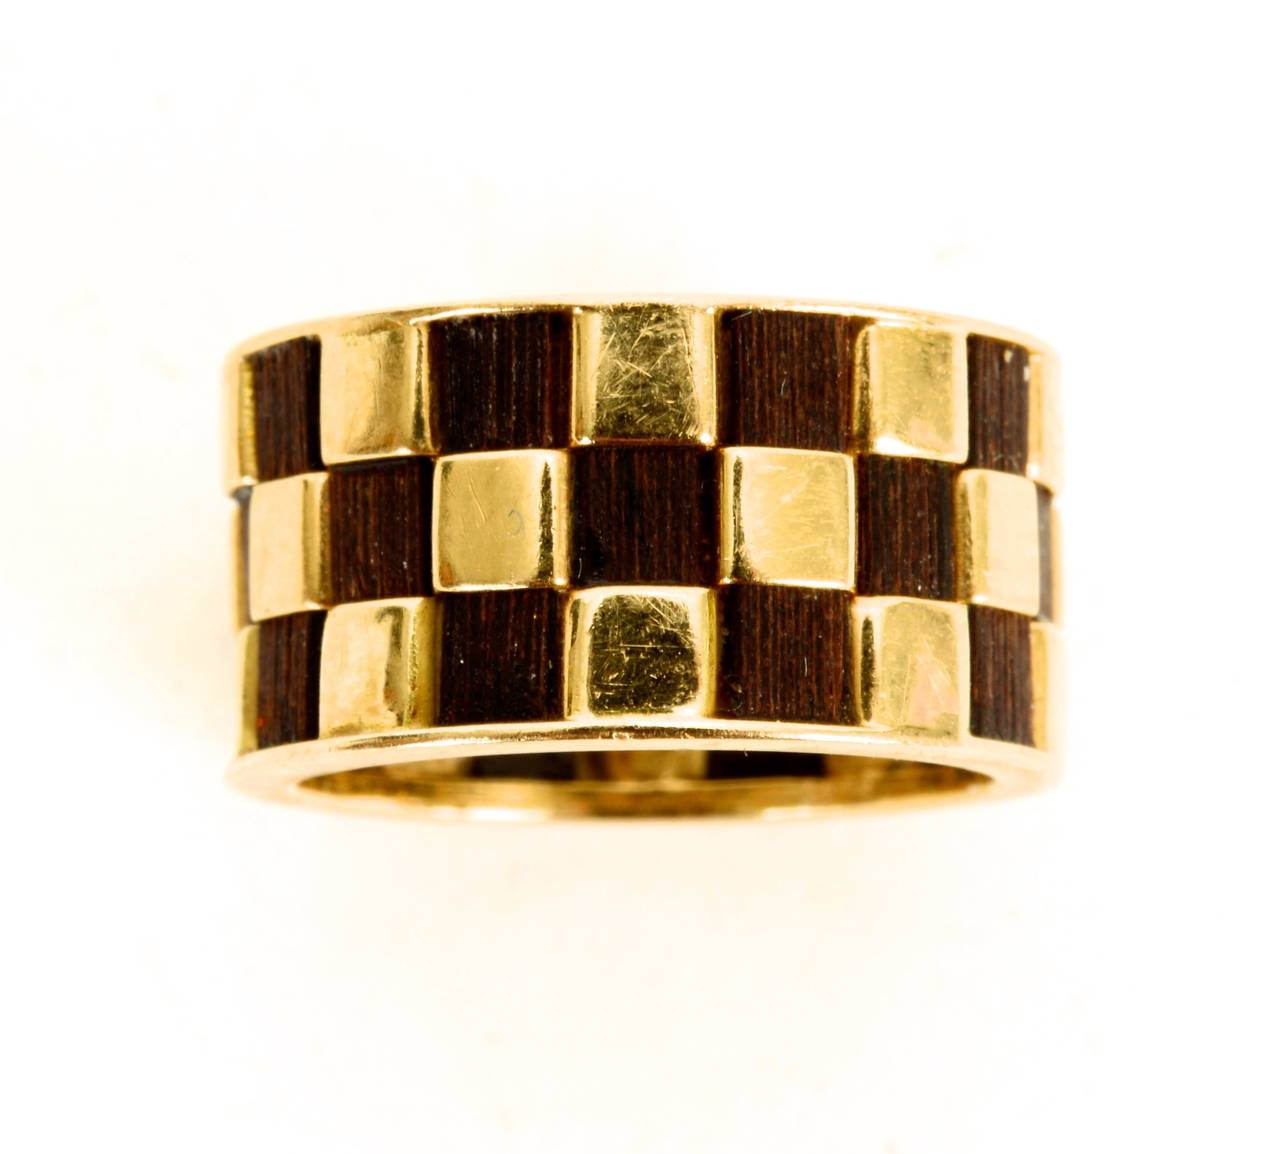 A 18kt gold and ebony band in a Checkerboard Design,